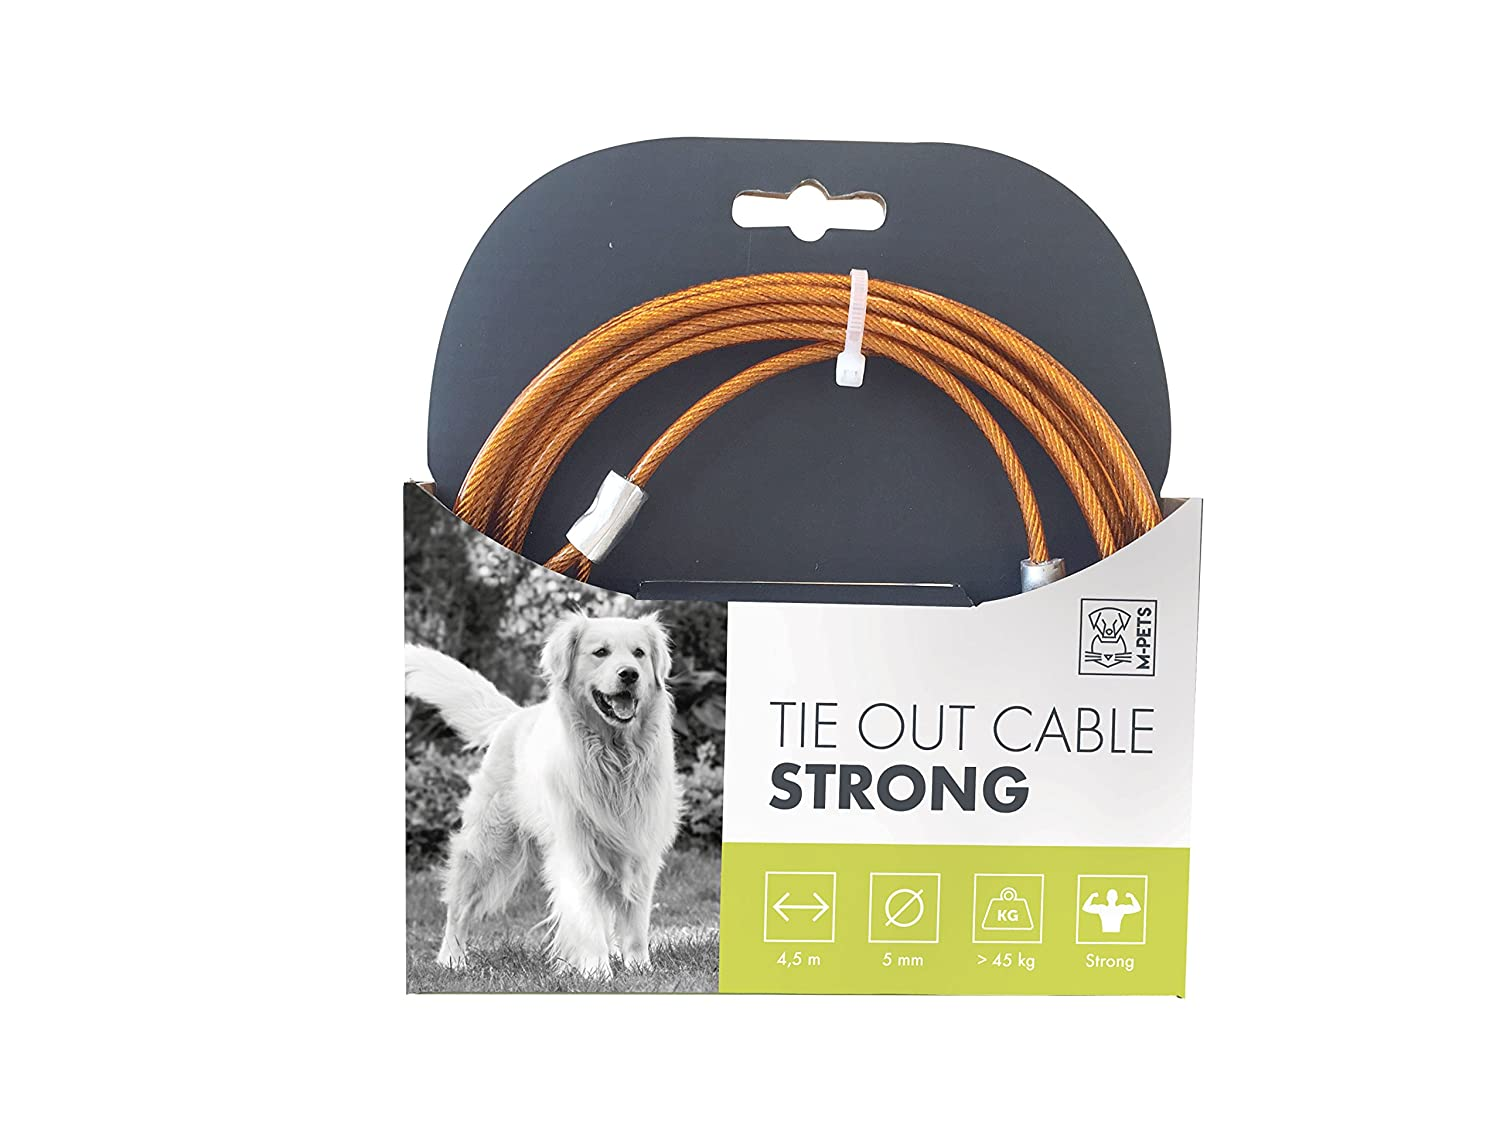 MPETS 10800199 Câble d'attache Strong pour Chien - Lot de 2